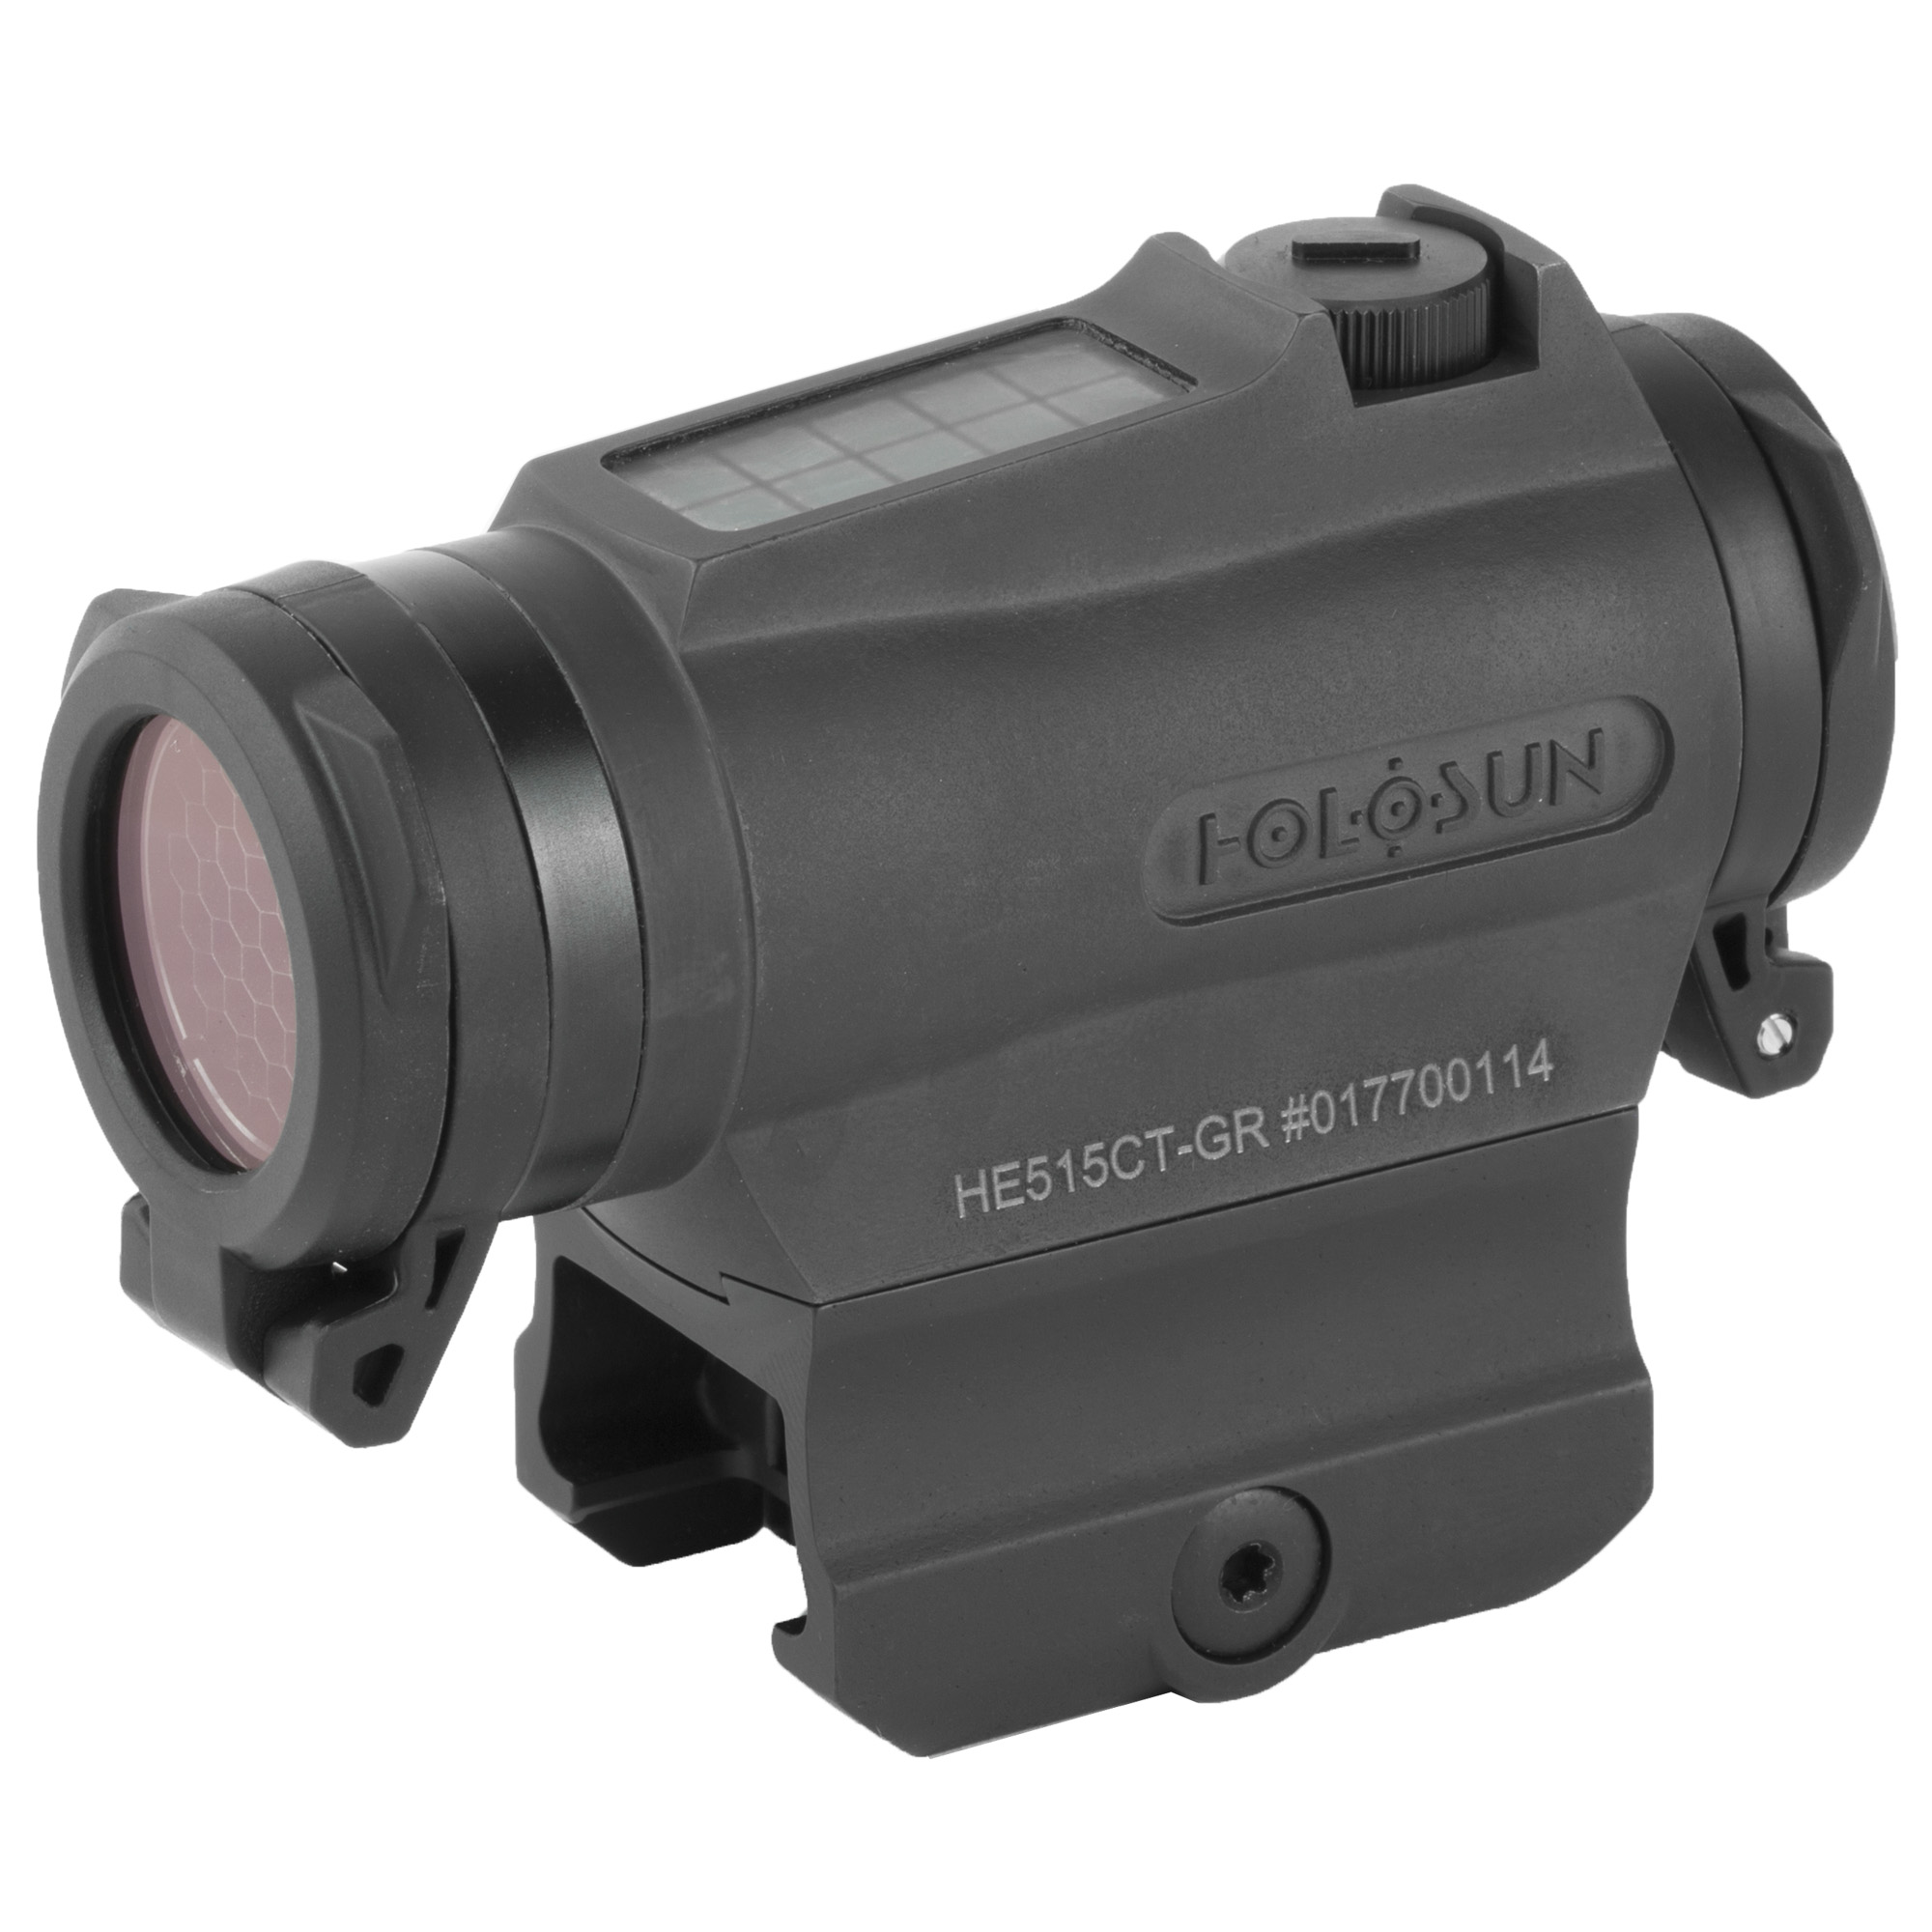 """The 515CT is a compact 20mm micro optic packed with innovations. Featuring Holosun's Multi-reticle system"""" the 515CT allows the operator to switch from a 2 MOA dot to a 65 MOA circle dot with a push of a button. Holosun's highly efficient light emitting diodes and Solar Fail-safe technology allow the 515CT optics to run without a battery in many lighting conditions. Additionally"""" the CR2032 battery lasts up to 5-years. The 515CT is housed in CNC machined Titanium and comes with removable"""" non-obstructing"""" clear flip-up lens covers and kill flash. Holosun's Shake Awake technology puts the optic to sleep with no motion and wakes it up"""" recalling the last setting with the slightest movement"""" conserving battery life even further. The HE515CT is built for all your needs no matter the weapon platform"""" environment"""" or type of use."""